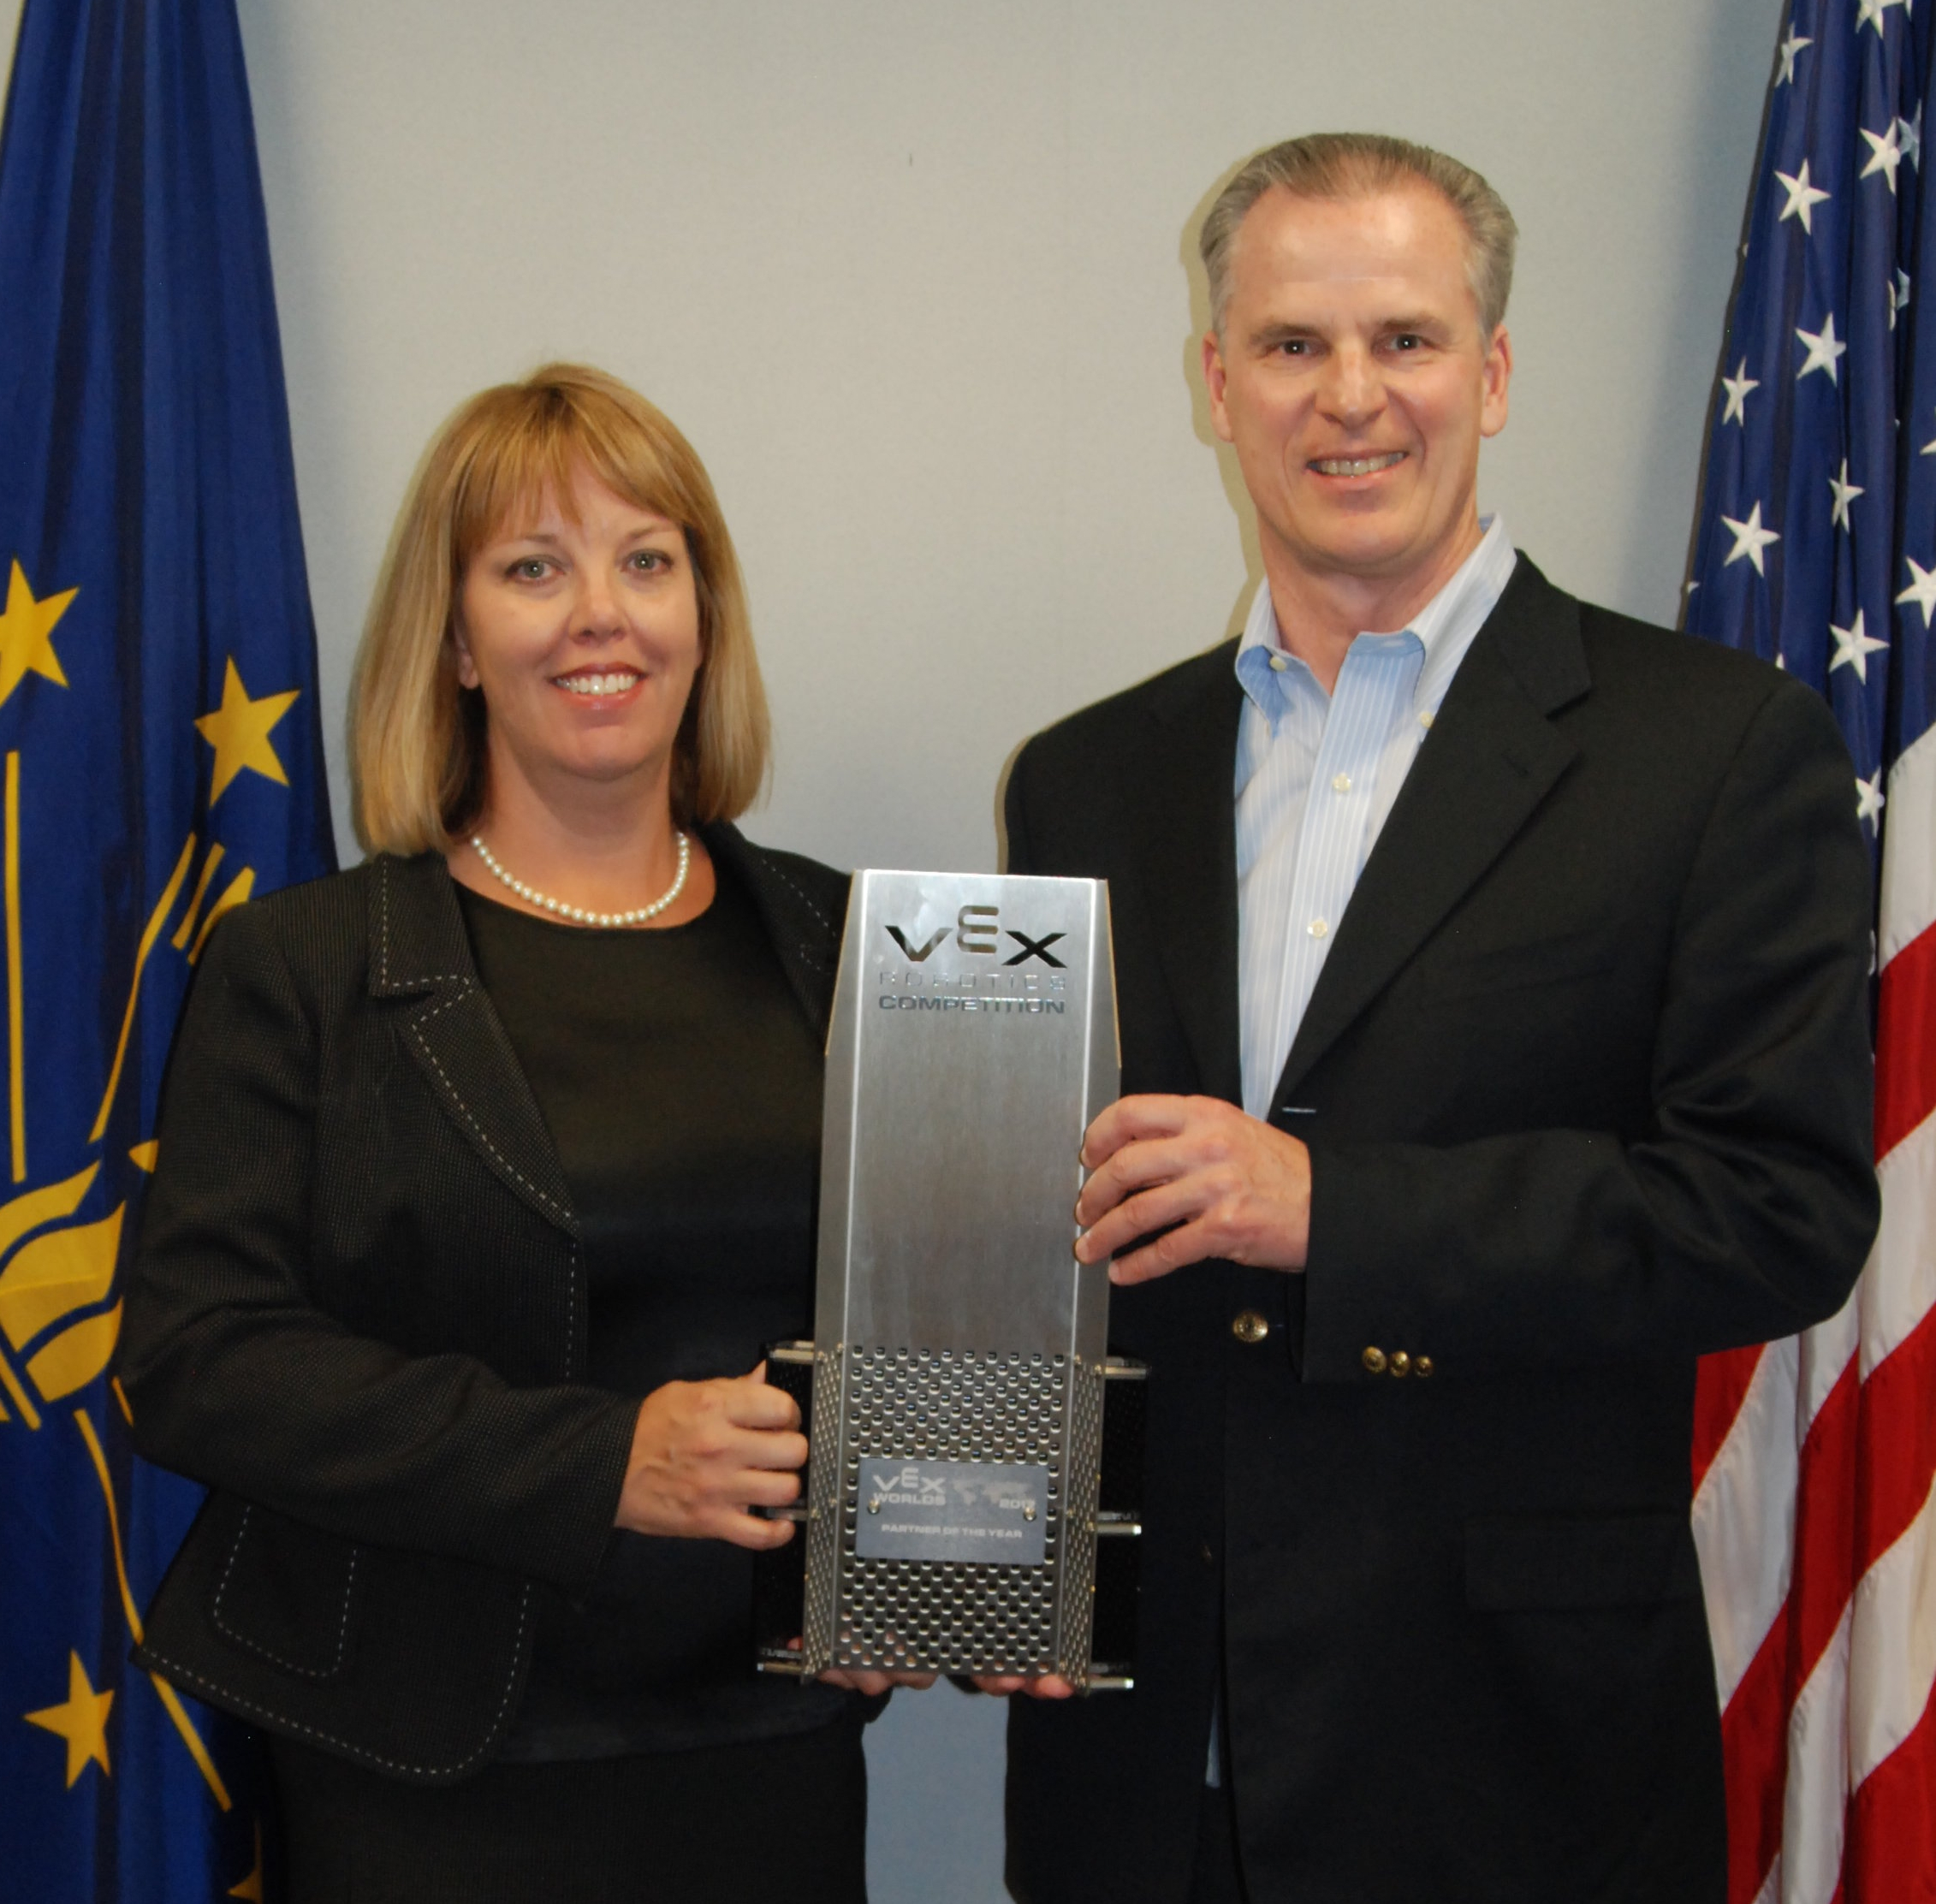 TPF4Y Executive Director Laura Dodds and DWD Commissioner Steve Braun